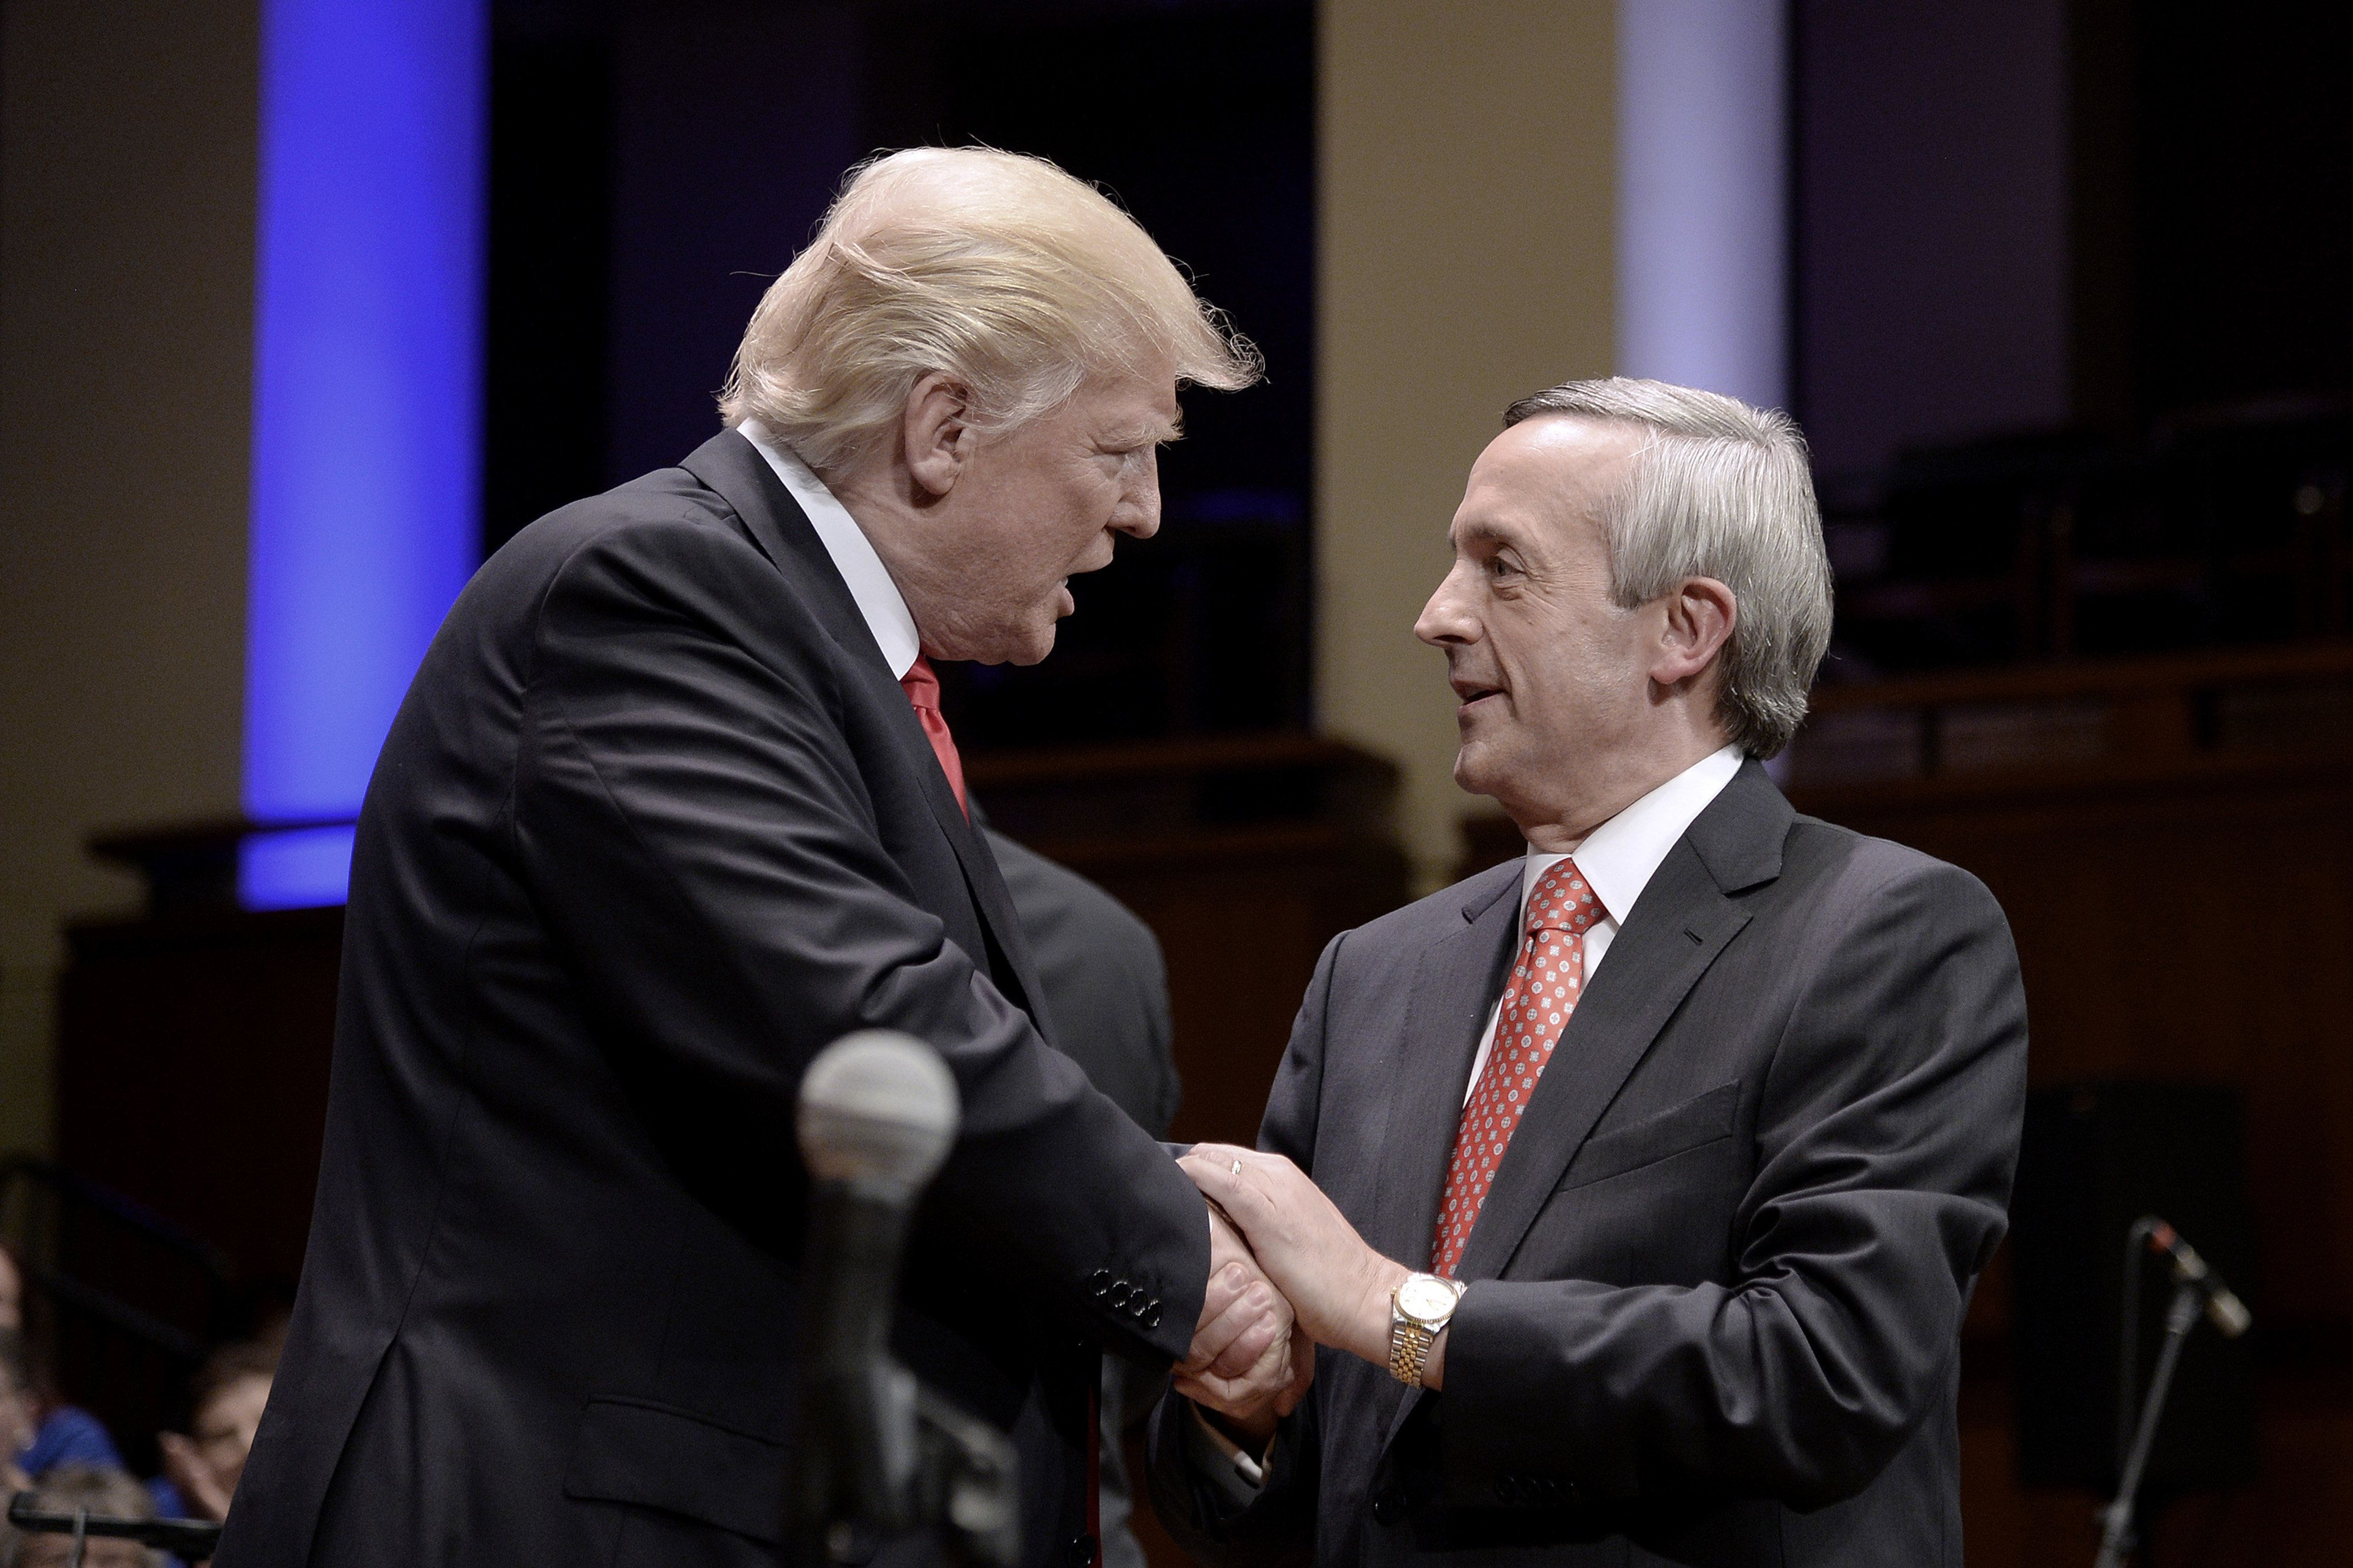 U.S. President Donald Trump, left, speaks with pastor Robert Jeffress during the 'Celebrate Freedom' event at the John F. Kennedy Center for the Performing Arts in Washington, D.C., U.S., on Saturday, July 1, 2017. Trump returned to the relatively calm waters of patriotism and supporting American troops in a speech on Saturday night that followed several outbursts against the media and others on social media earlier in the day. Photographer: Olivier Douliery/Bloomberg via Getty Images